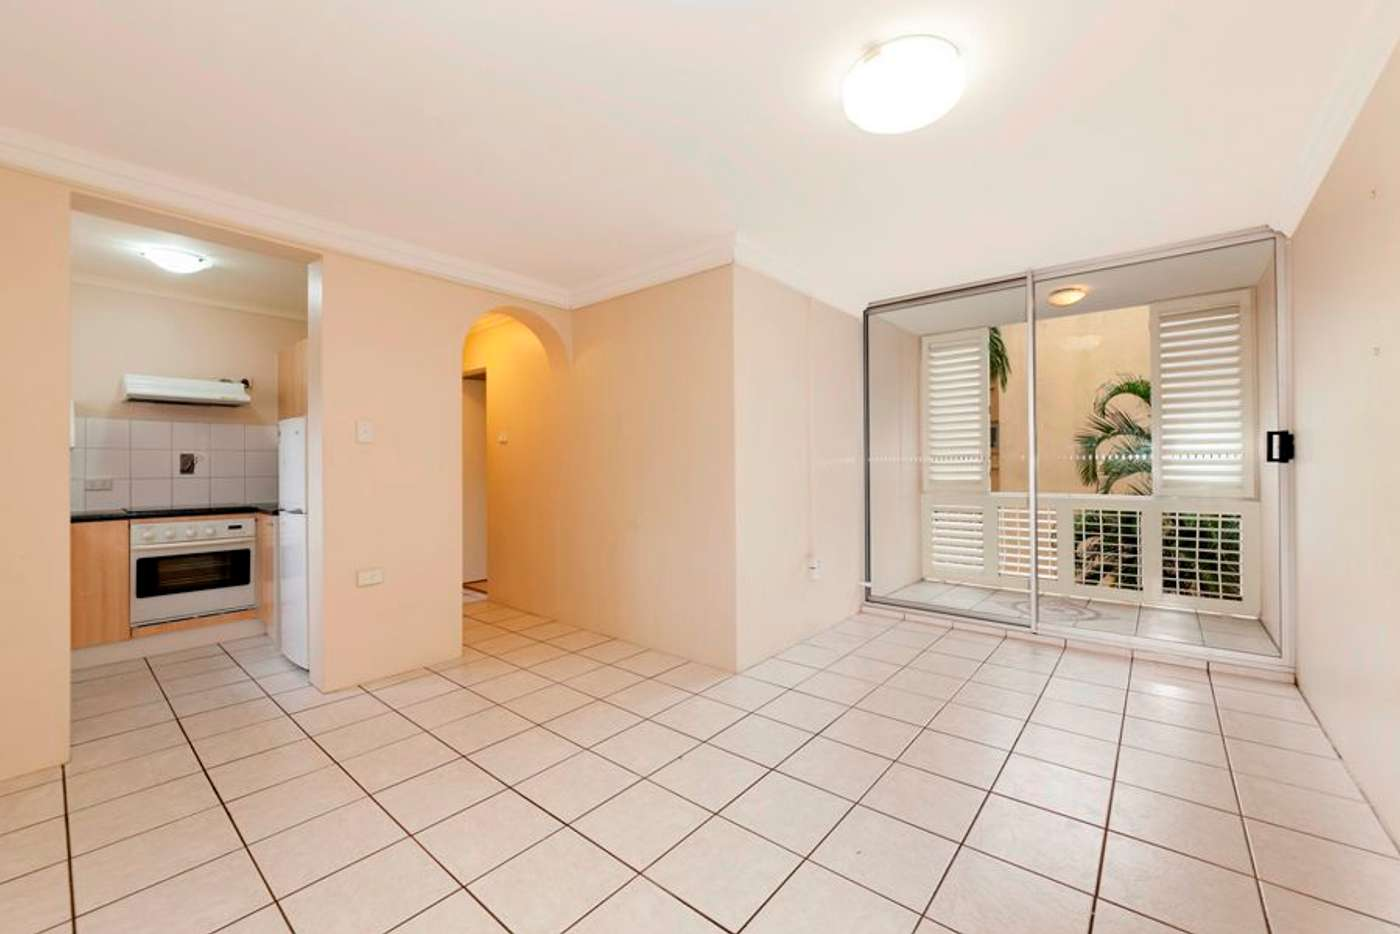 Main view of Homely apartment listing, 8/53 Thorn Street, Kangaroo Point QLD 4169